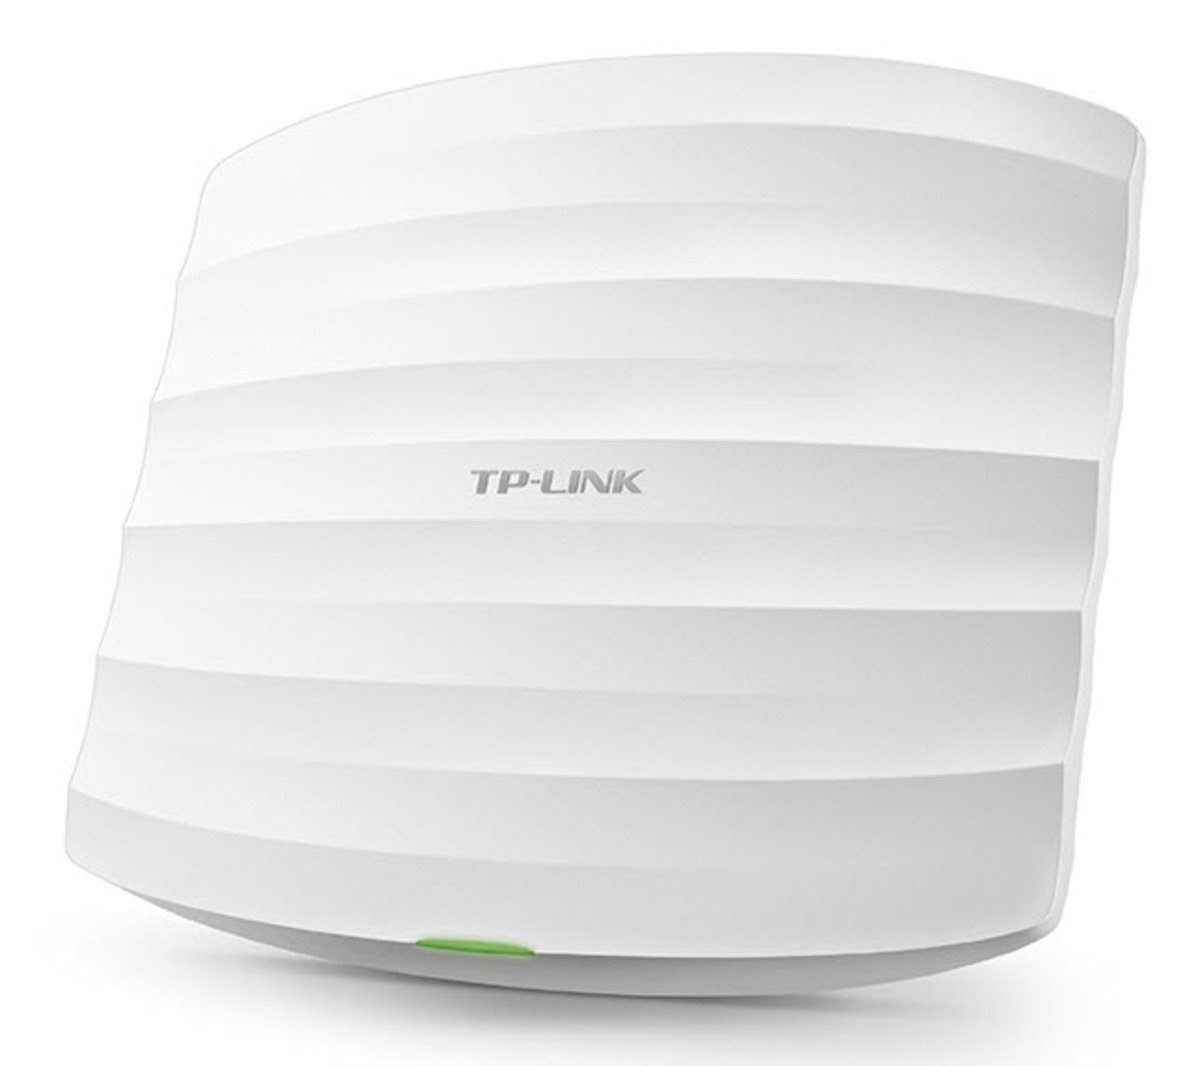 TP-Link Access-Point »EAP330 2,4 GHz & 5 GHz AC1900 POE Accesspoint«